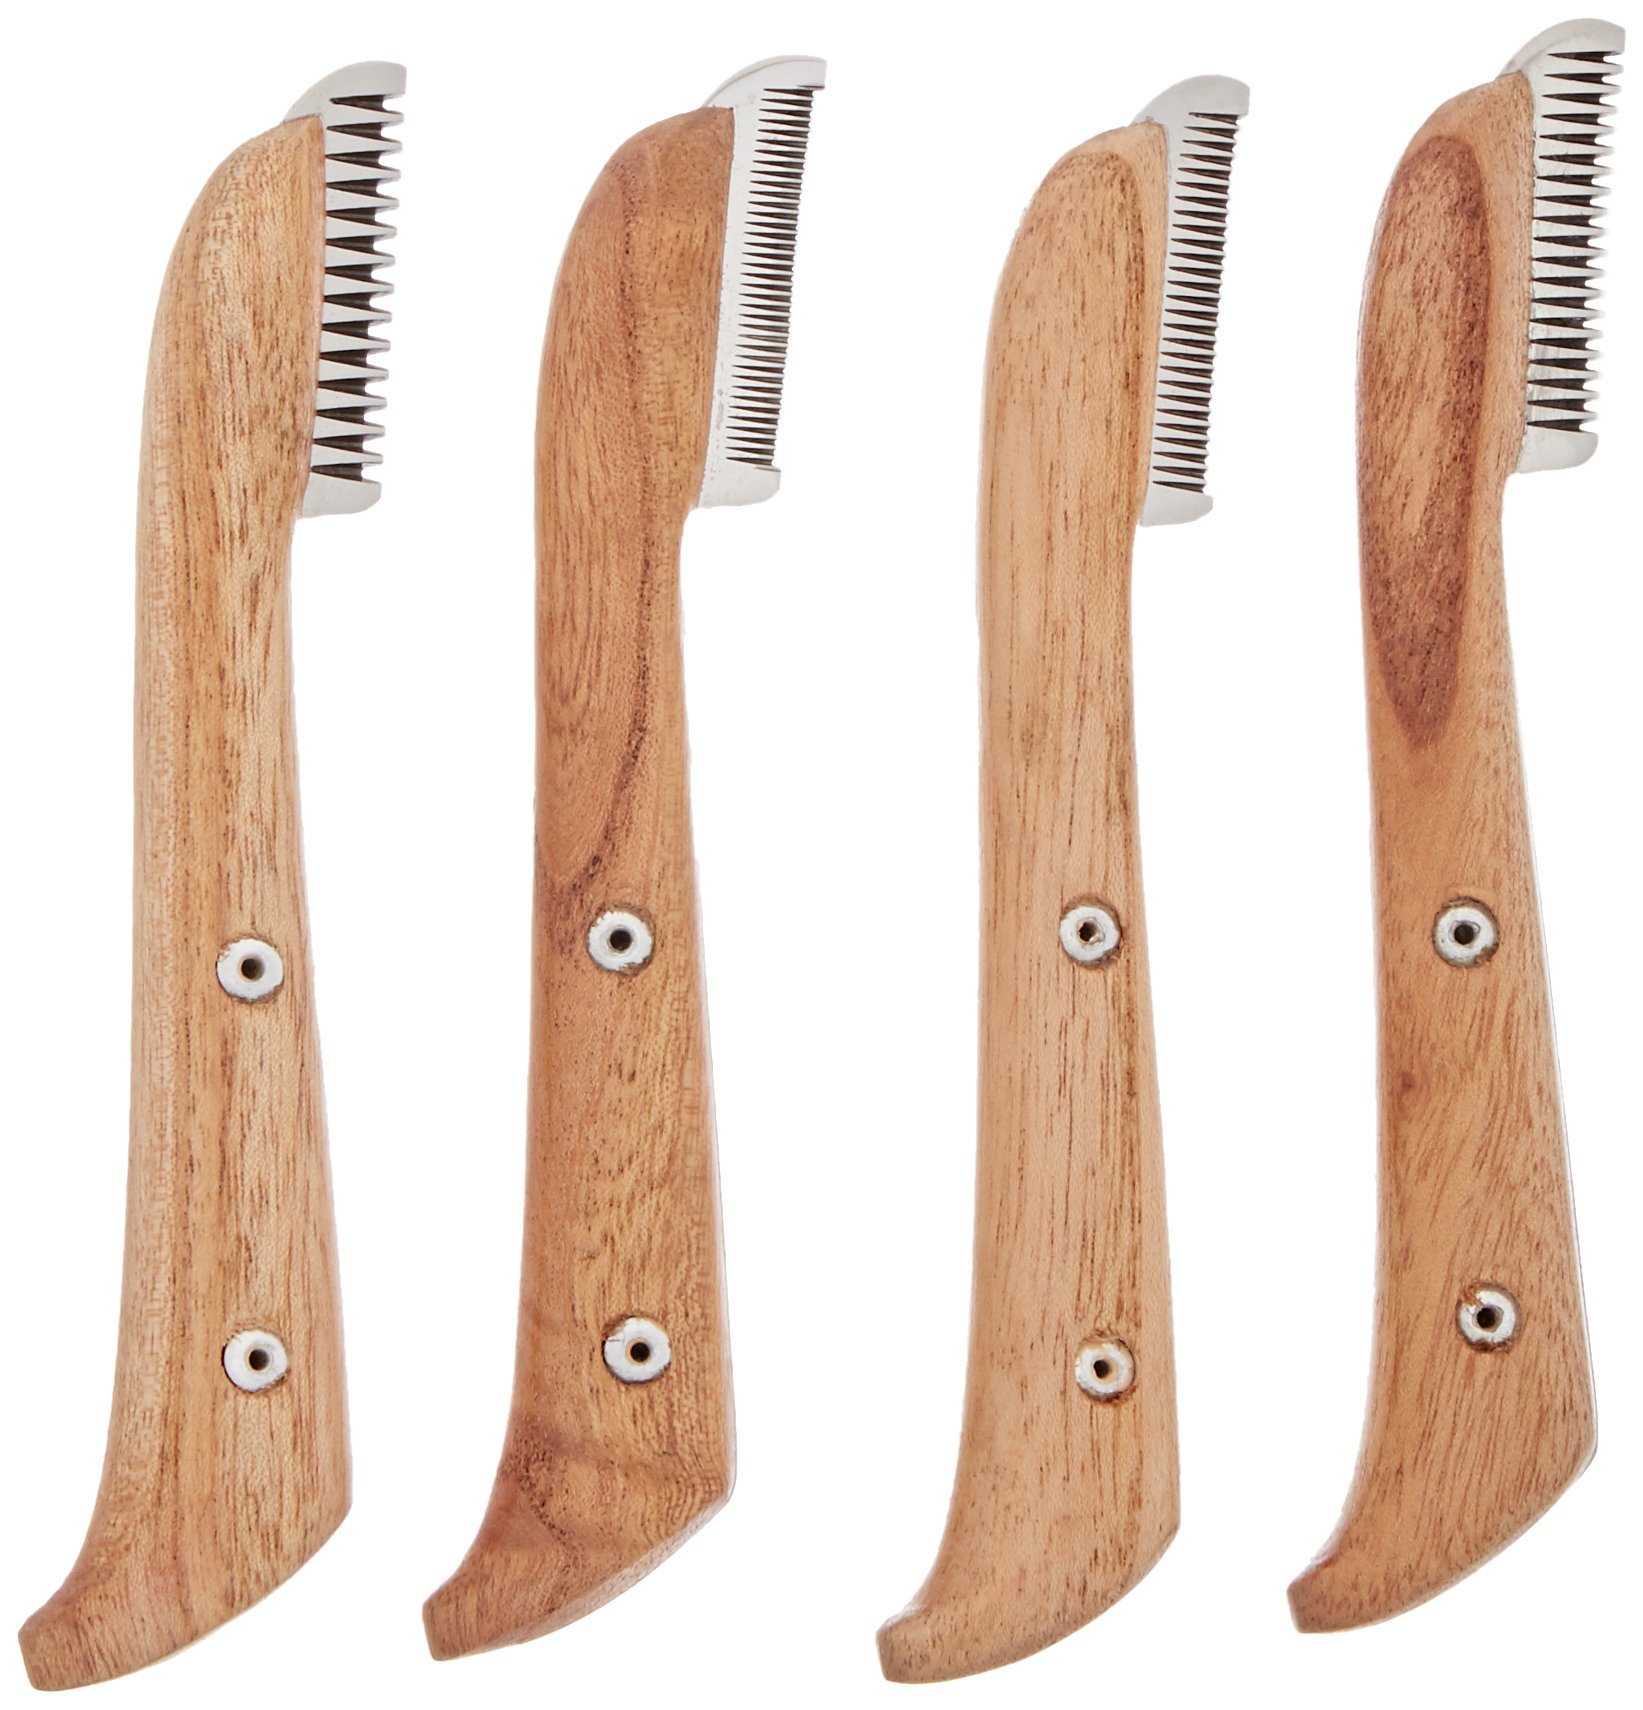 Tamsco Stripping Knives Set of 4 in Felt Box Felt Box Stainless Steel Stainless Steel by Tamsco